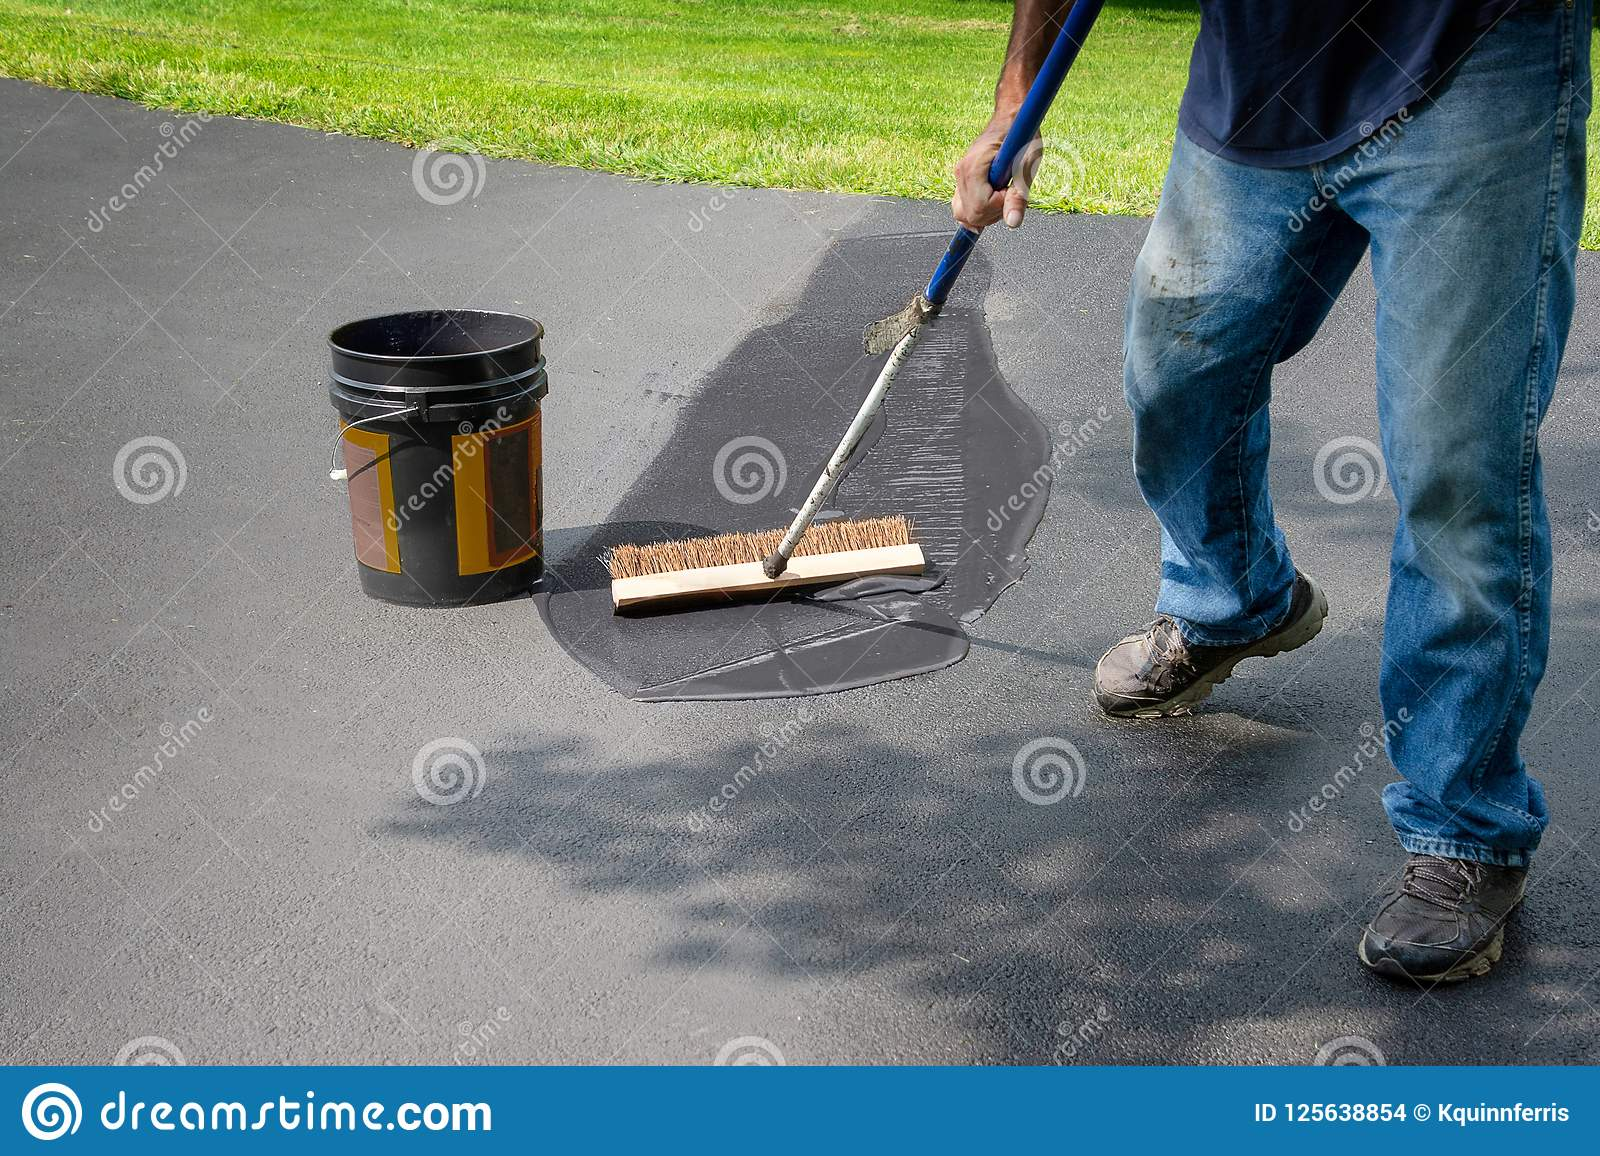 Spreading asphalt in home driveway stock photo image of coating download spreading asphalt in home driveway stock photo image of coating pavement 125638854 solutioingenieria